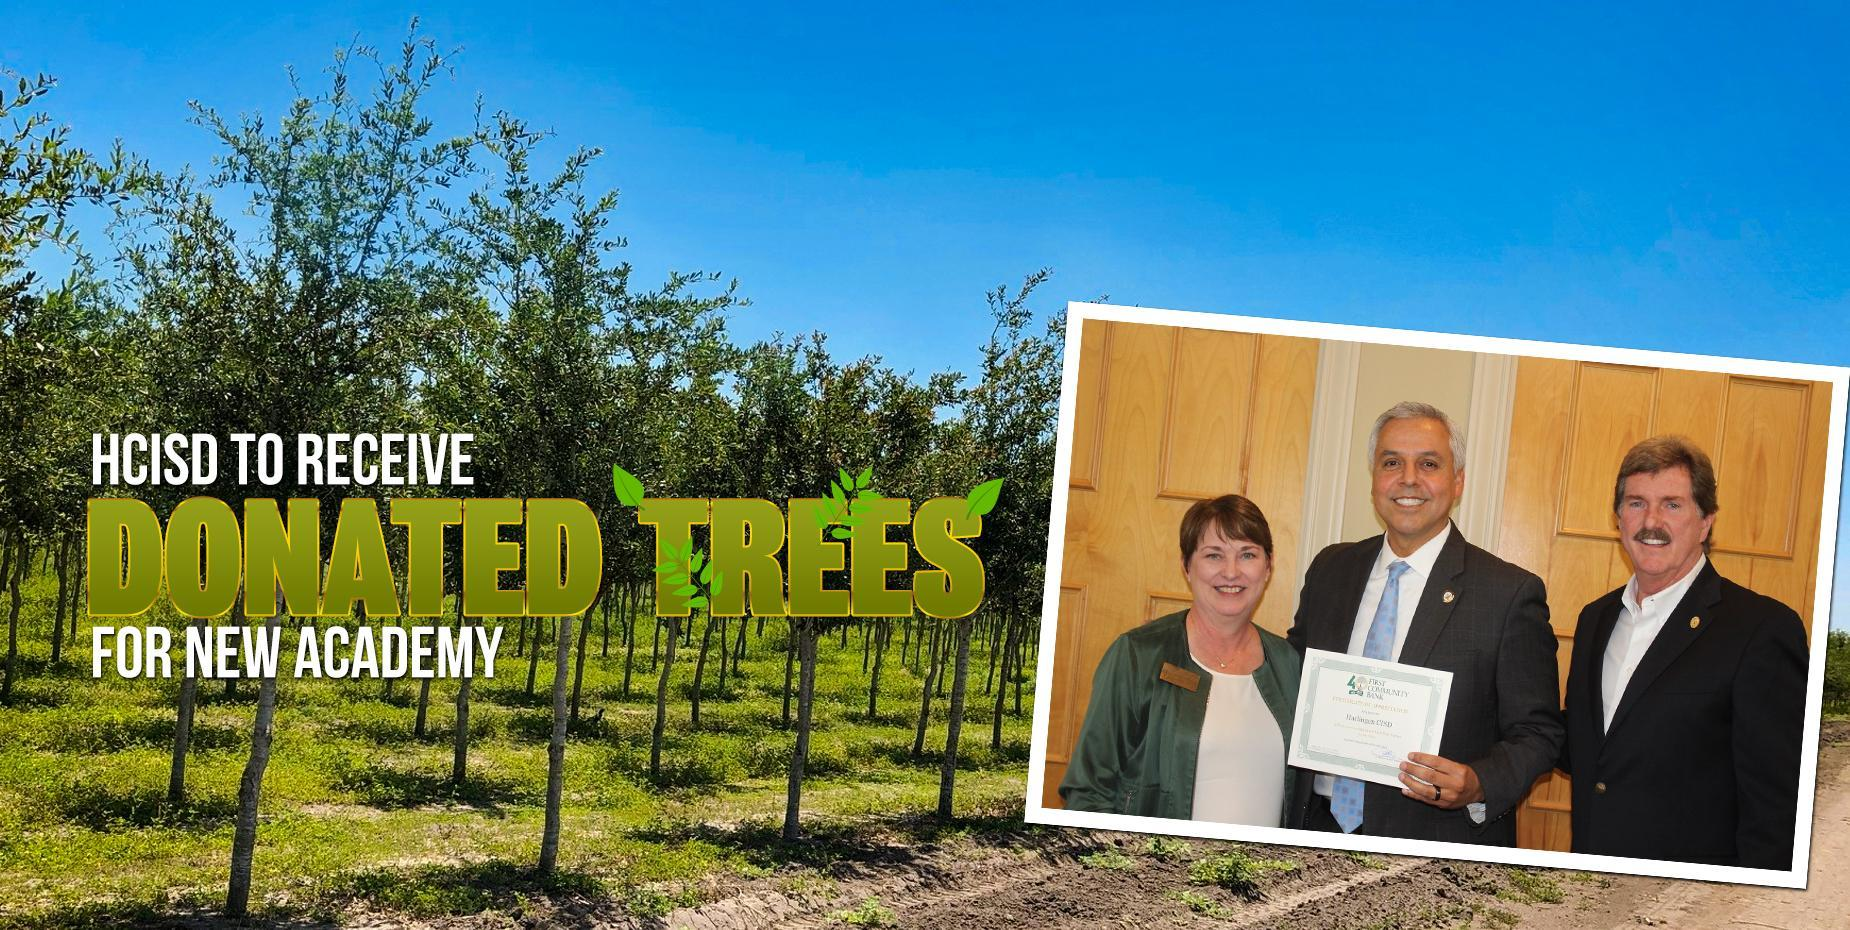 HCISD to receive donated trees for new academy